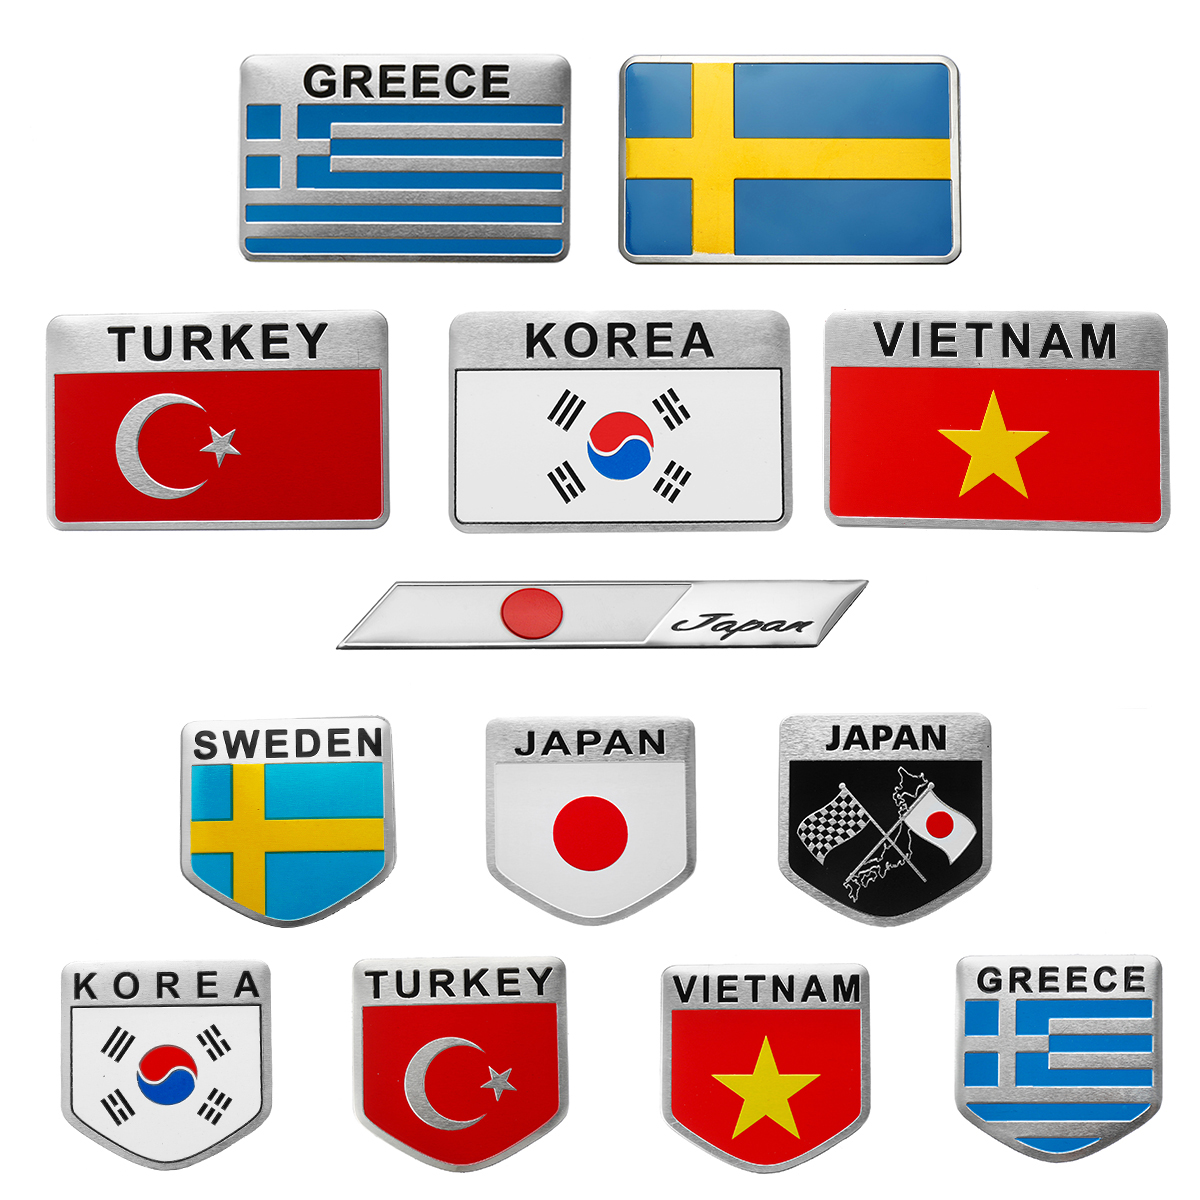 Turkey Sweden Greece Korea Vietnam Japan 3D Car Auto Sticker Decal Flag  Sticker Decal Emblem Badge Aluminum Alloy